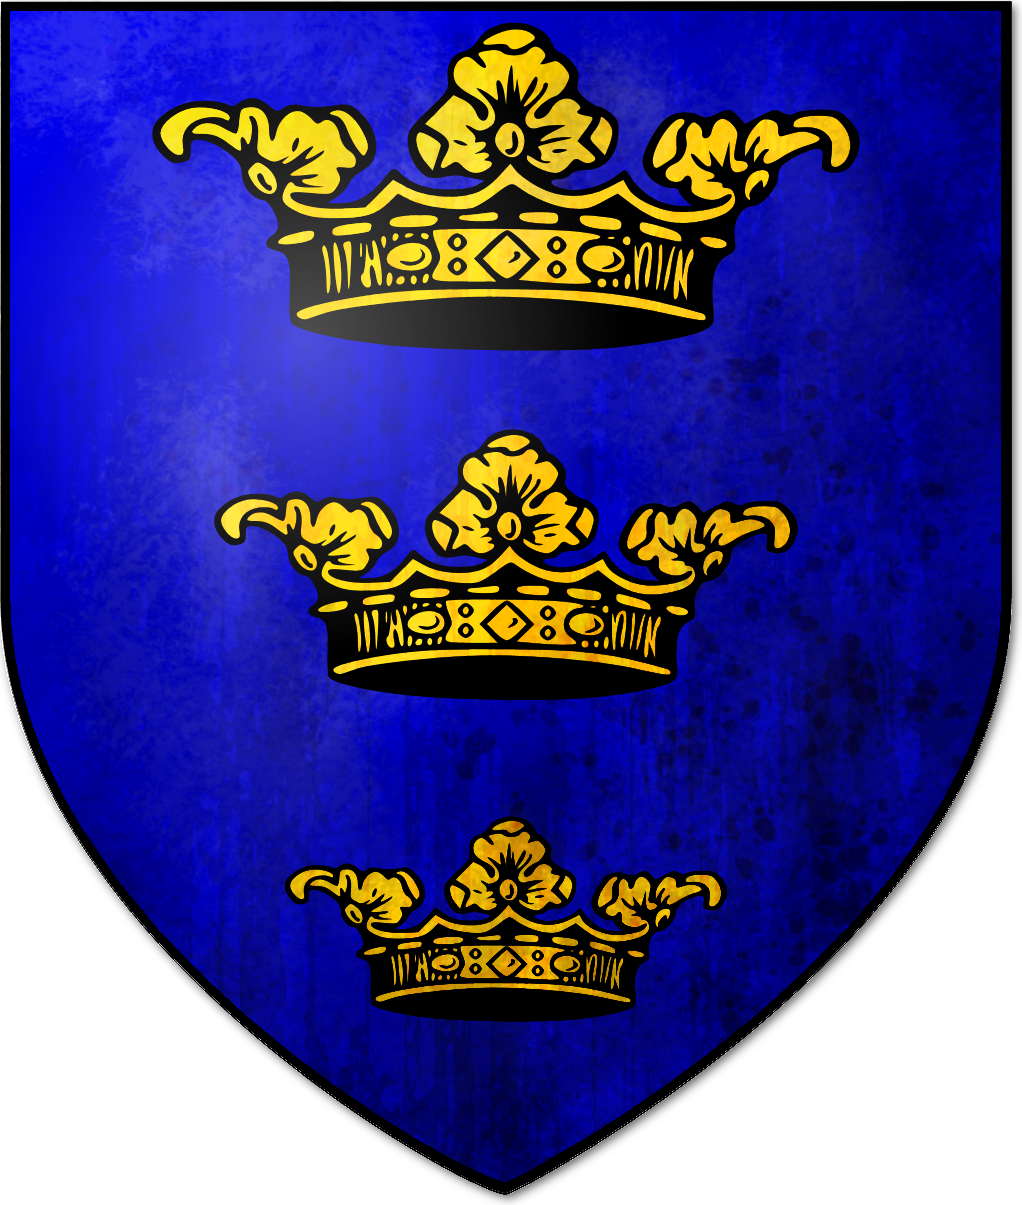 King Arthur's Coat of Arms